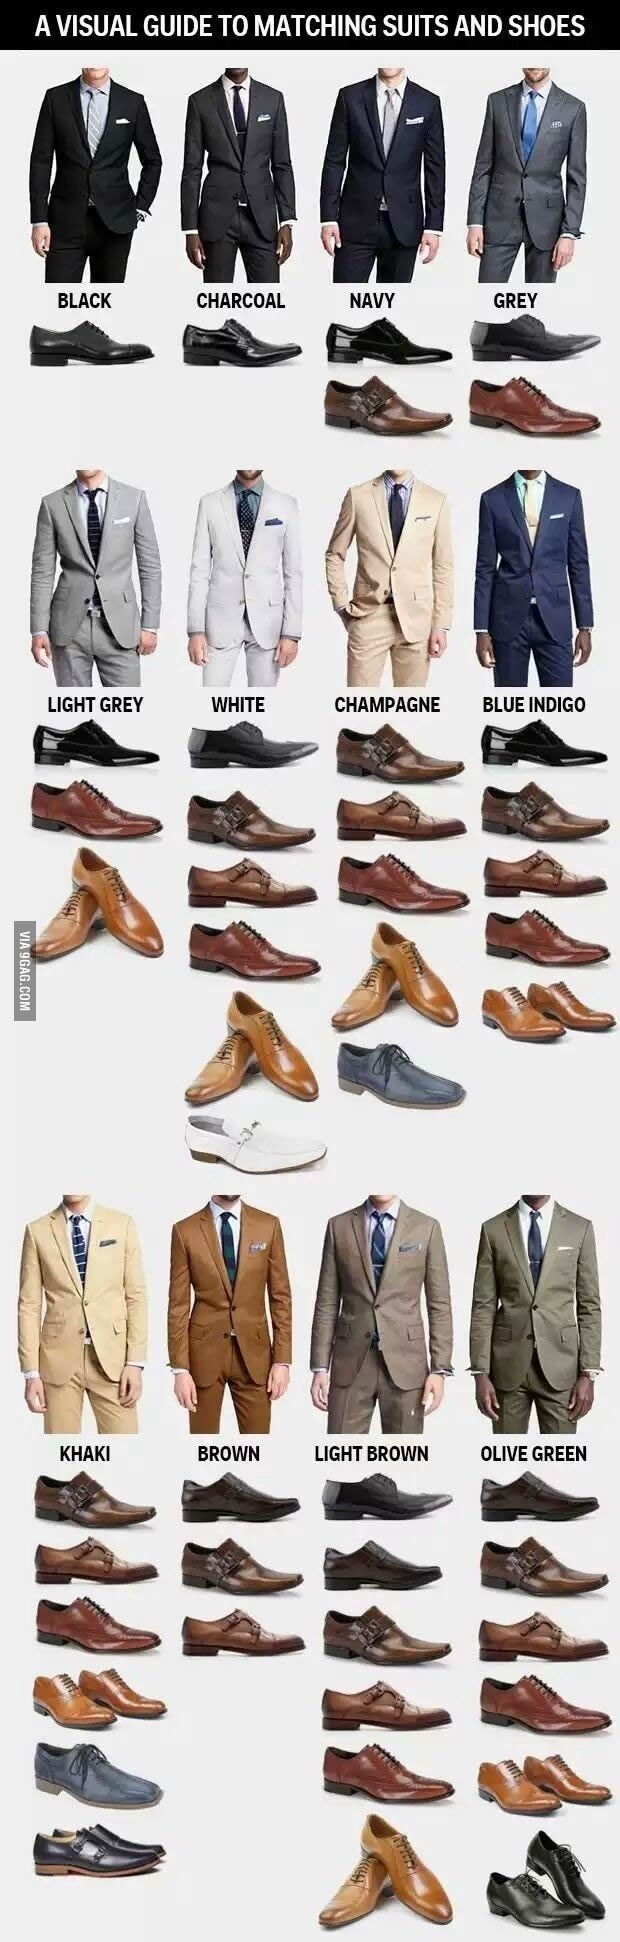 A visual guide for matching suits and shoes #men #suits #shoes #guide #style #fashion #affiliate